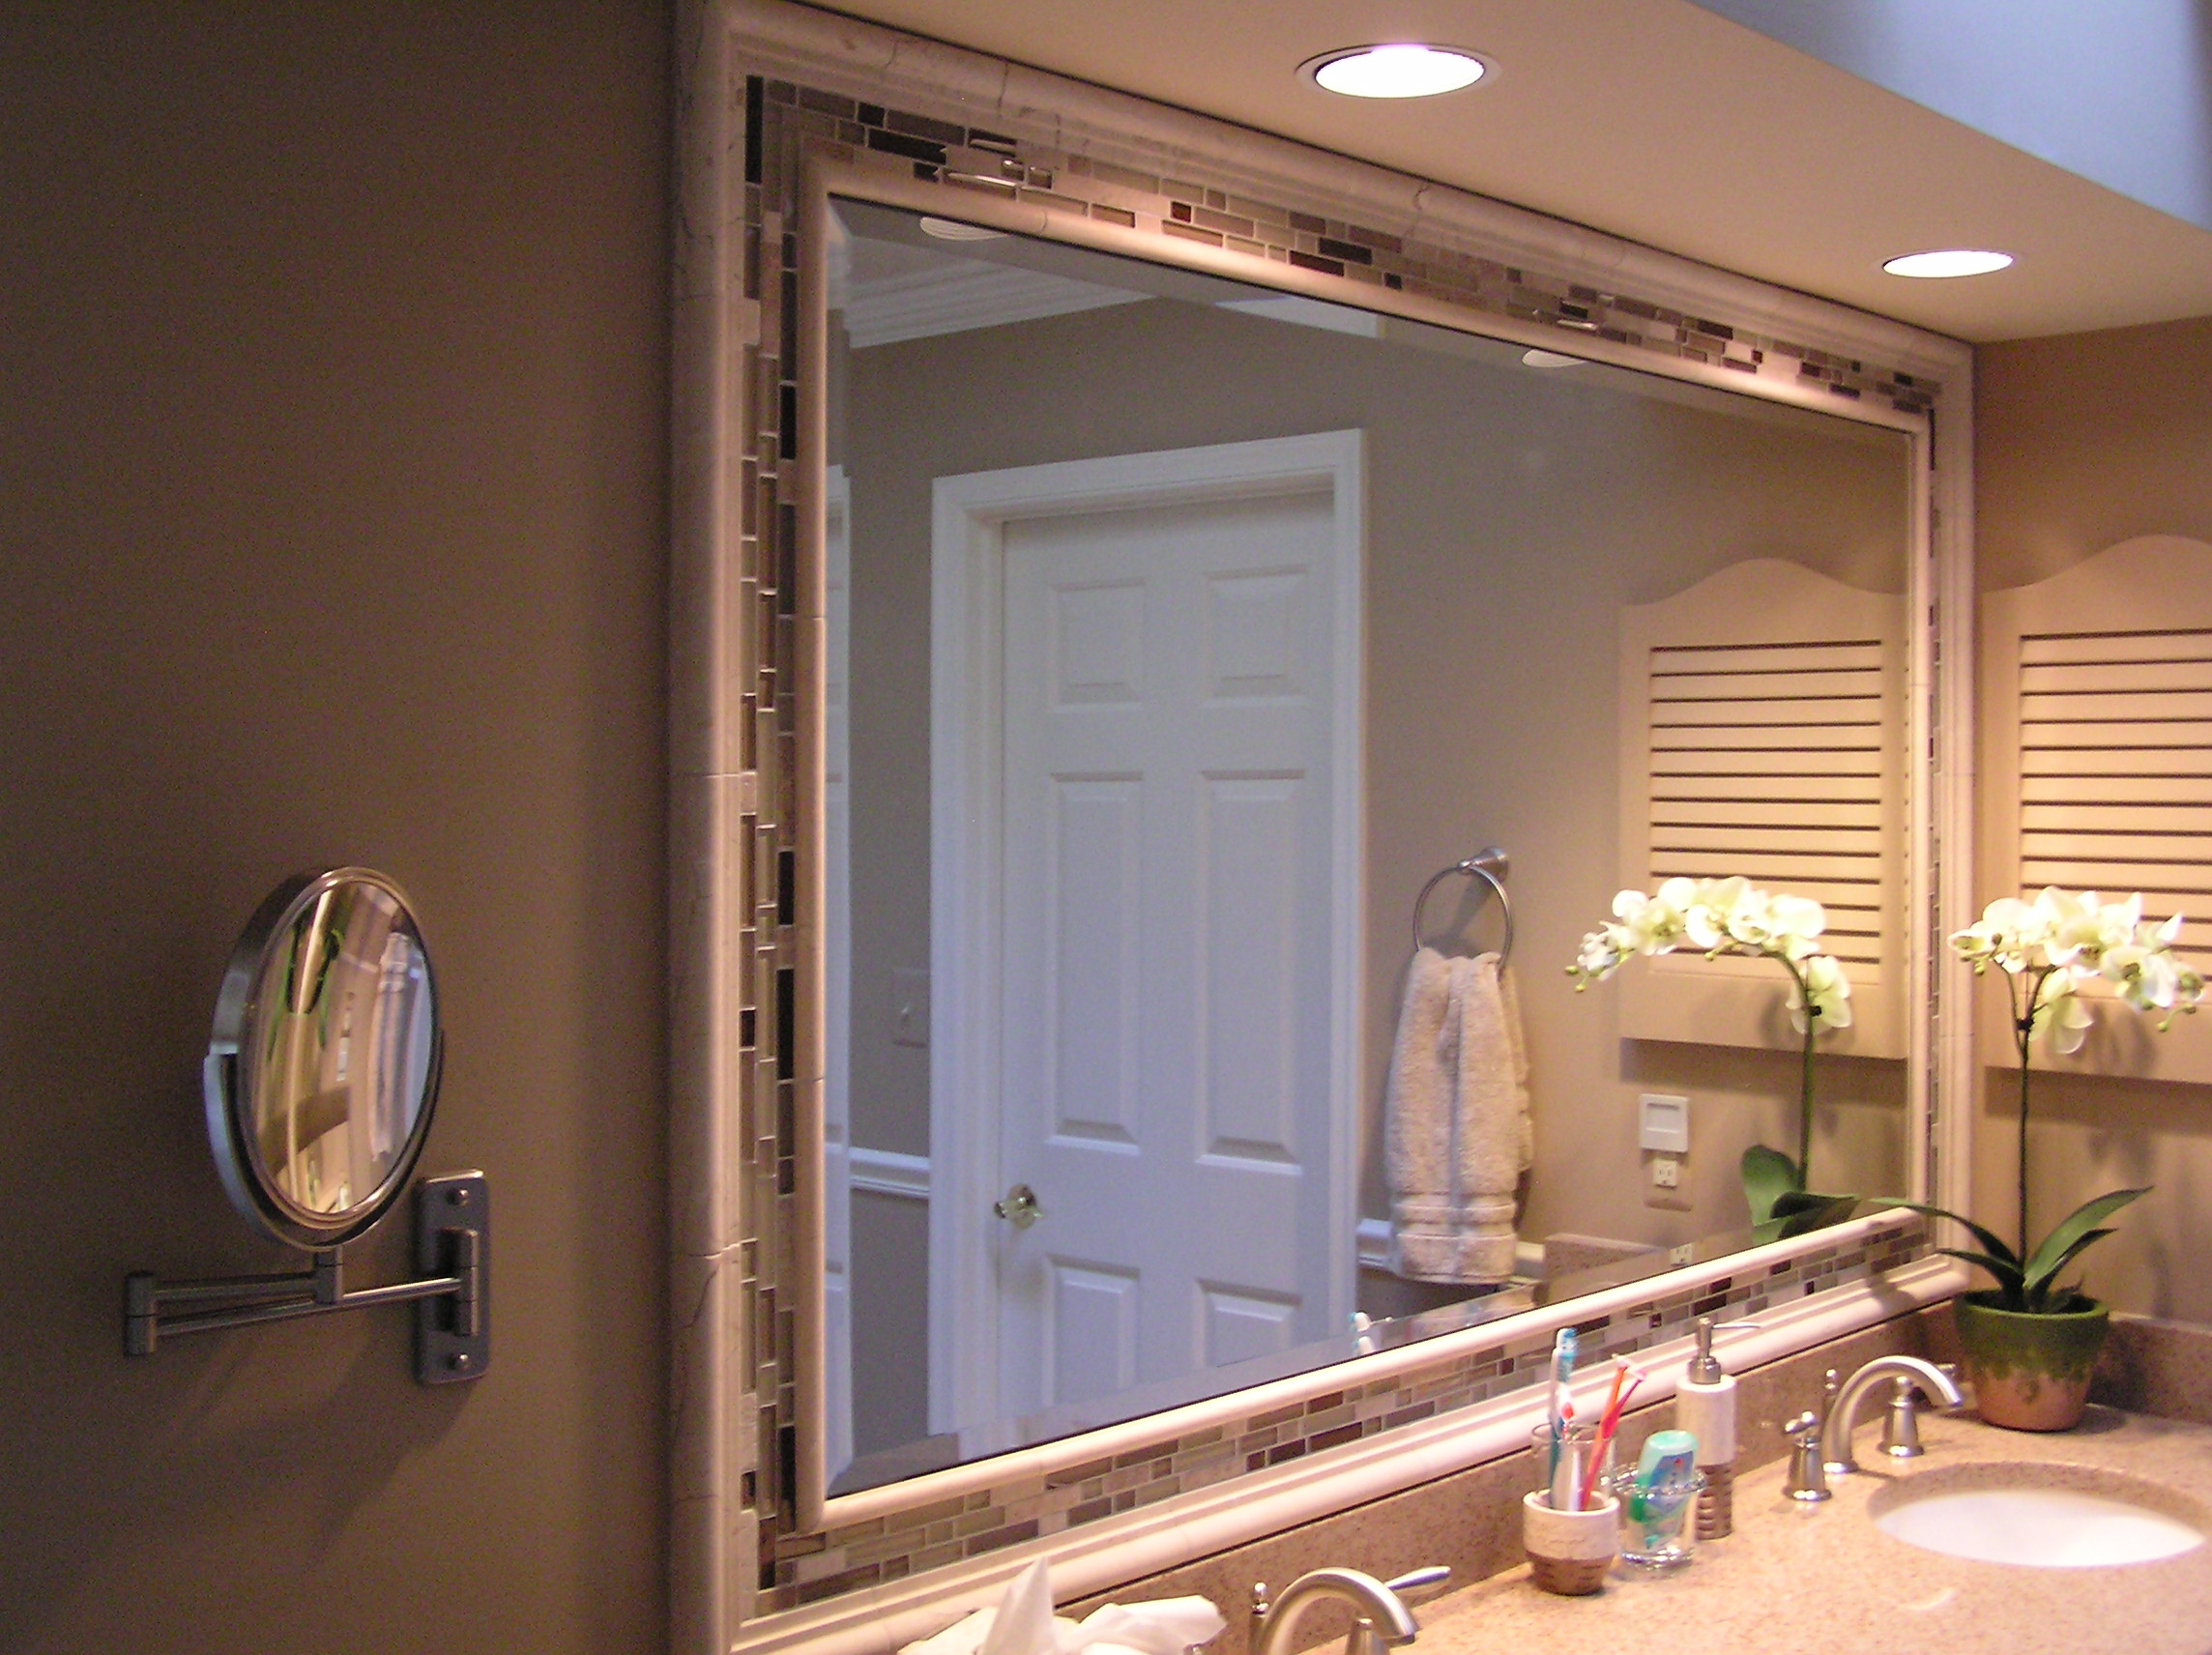 Bathroom vanity mirror ideas large and beautiful photos for Vanity mirrors for bathroom ideas